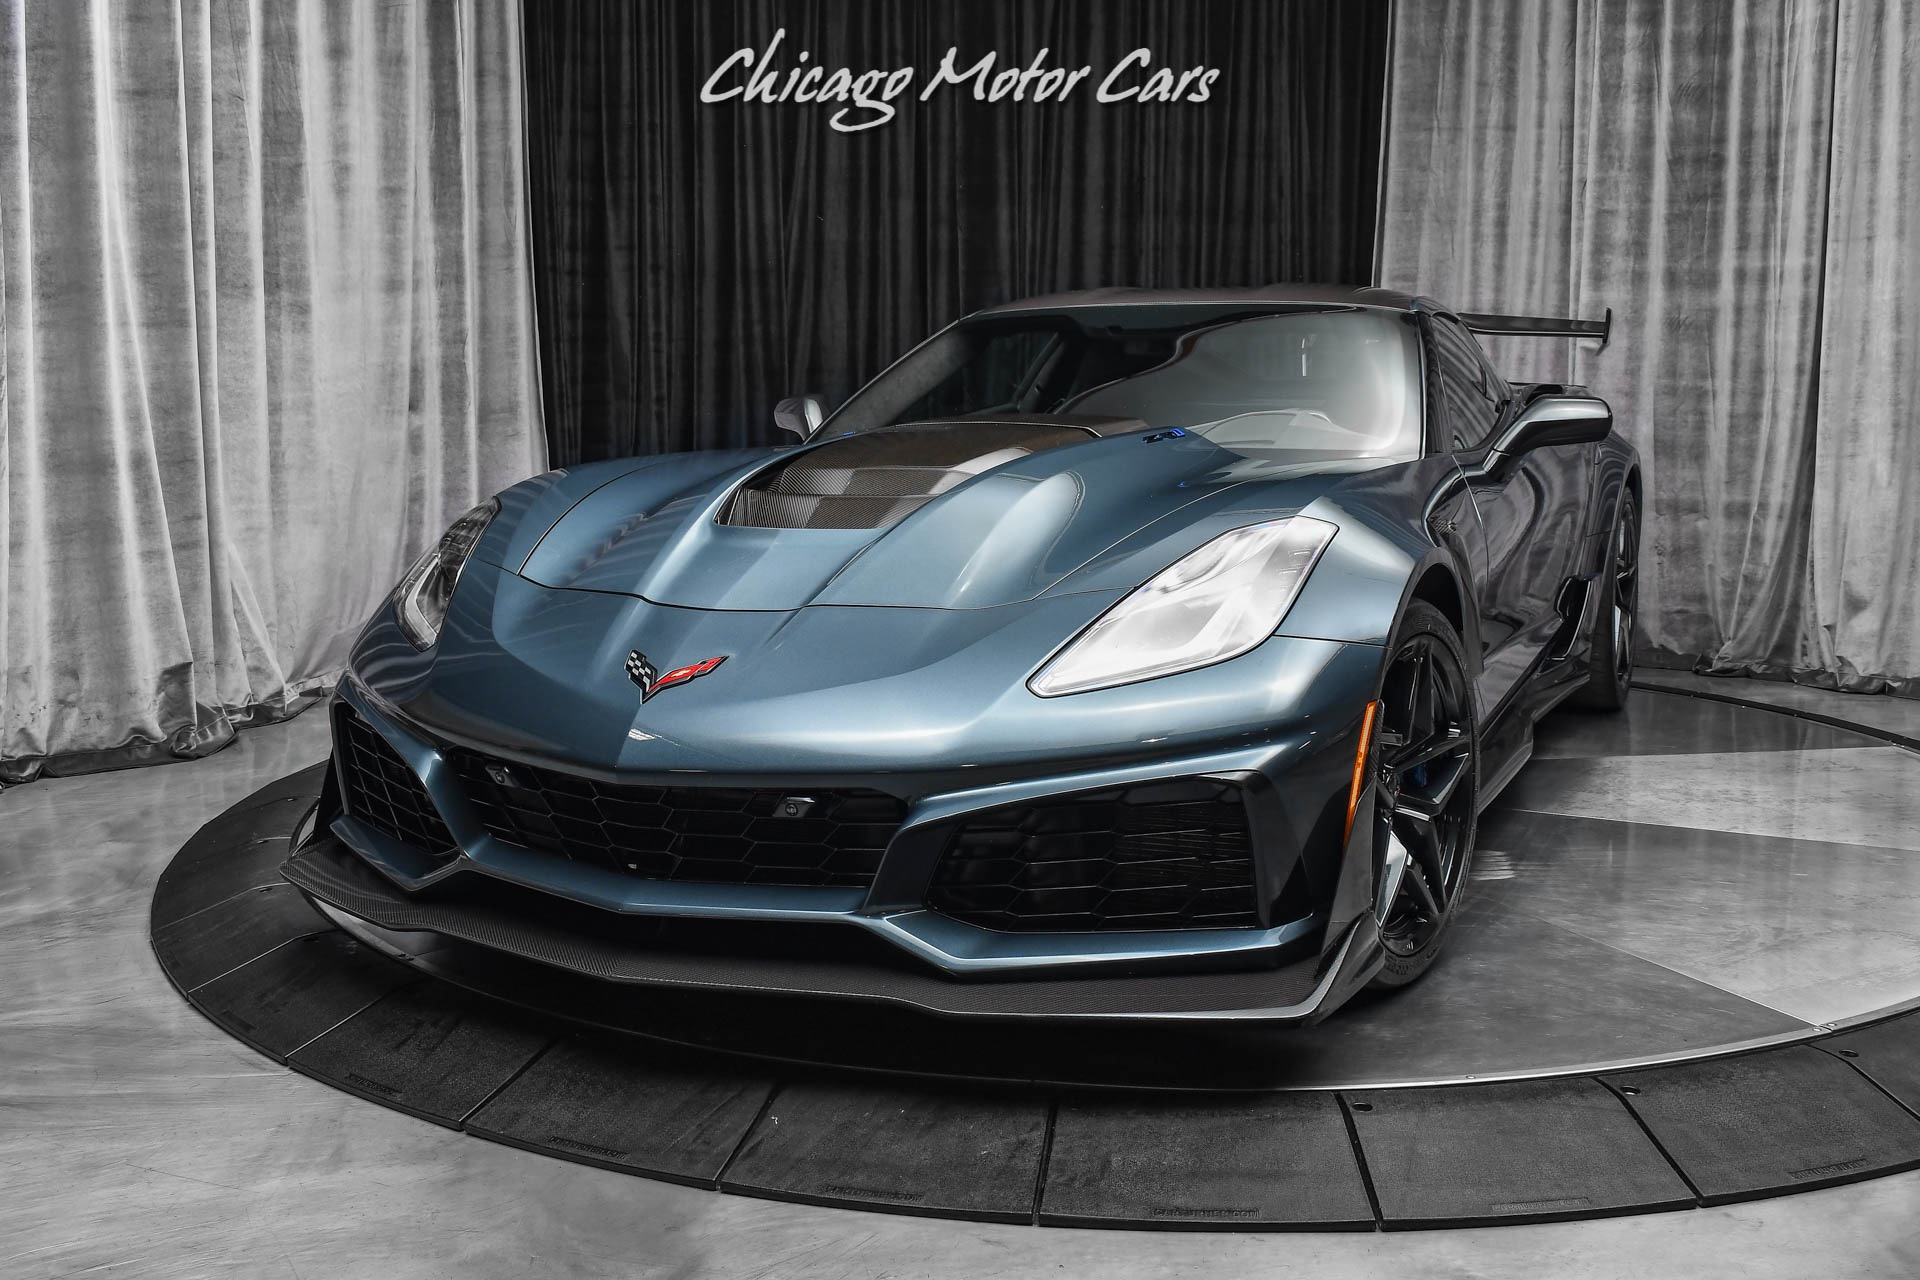 Used-2019-Chevrolet-Corvette-ZR1-3ZR-Coupe-TRACK-PERFORMANCE-PACKAGE-ONLY-3K-MILES